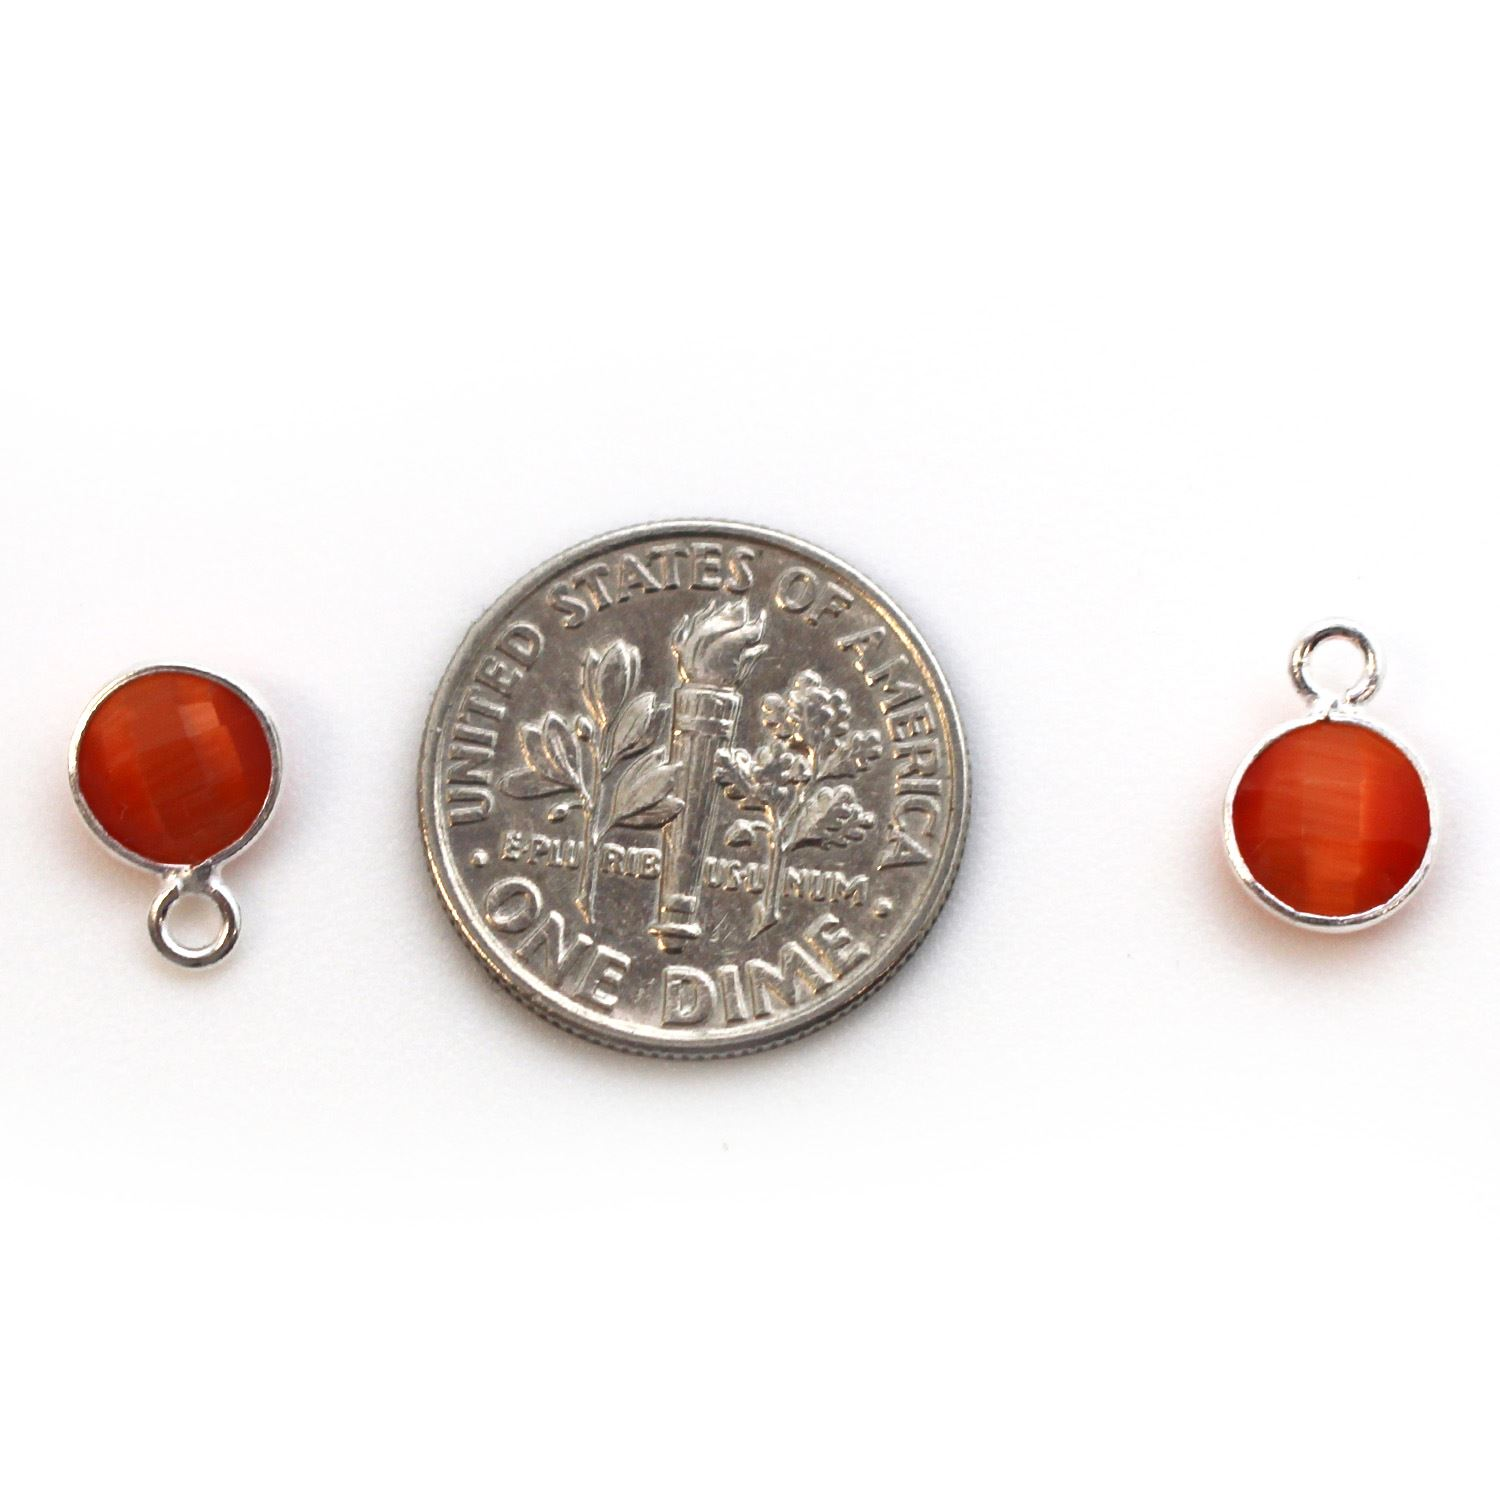 Bezel Gem Pendant-Sterling Silver-7mm Tiny Circle Shape - Orange Monalisa (sold per 2 pieces)